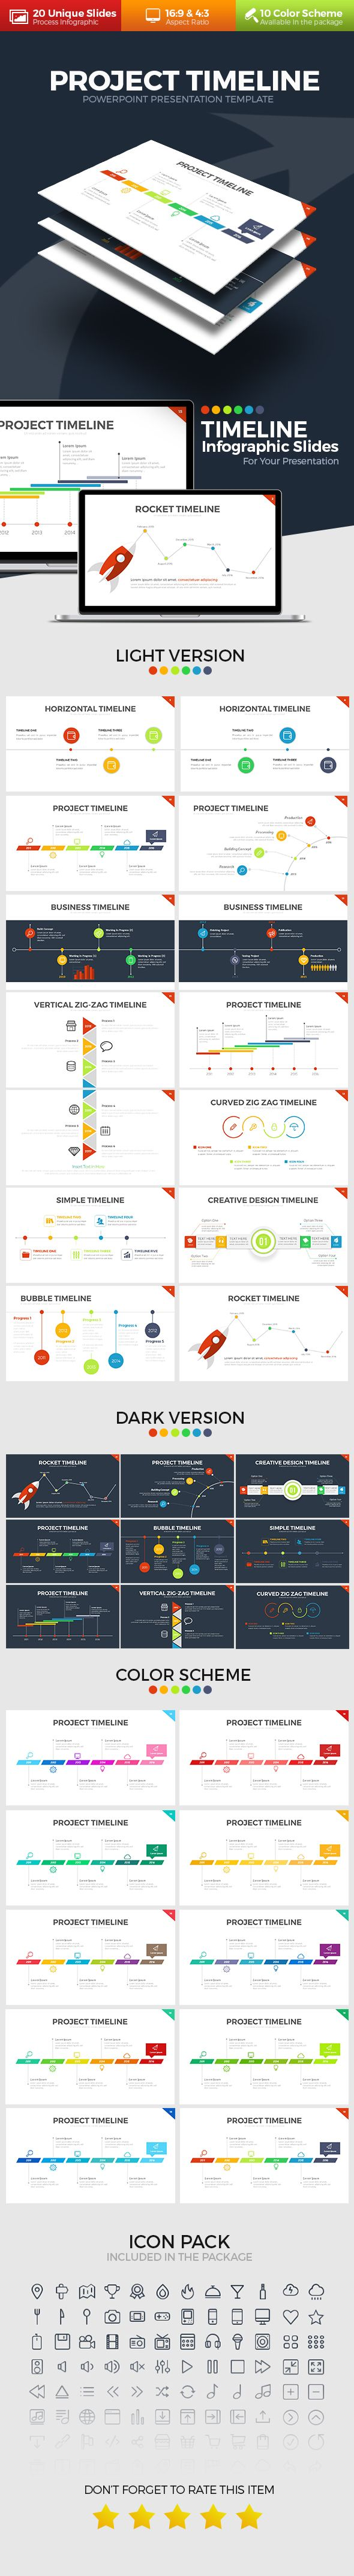 Project Timeline Powerpoint Template. Download Here:  Https://graphicriver.net/item/project-Timeline-Powerpoint-Template /17495263?ref=Ksioks